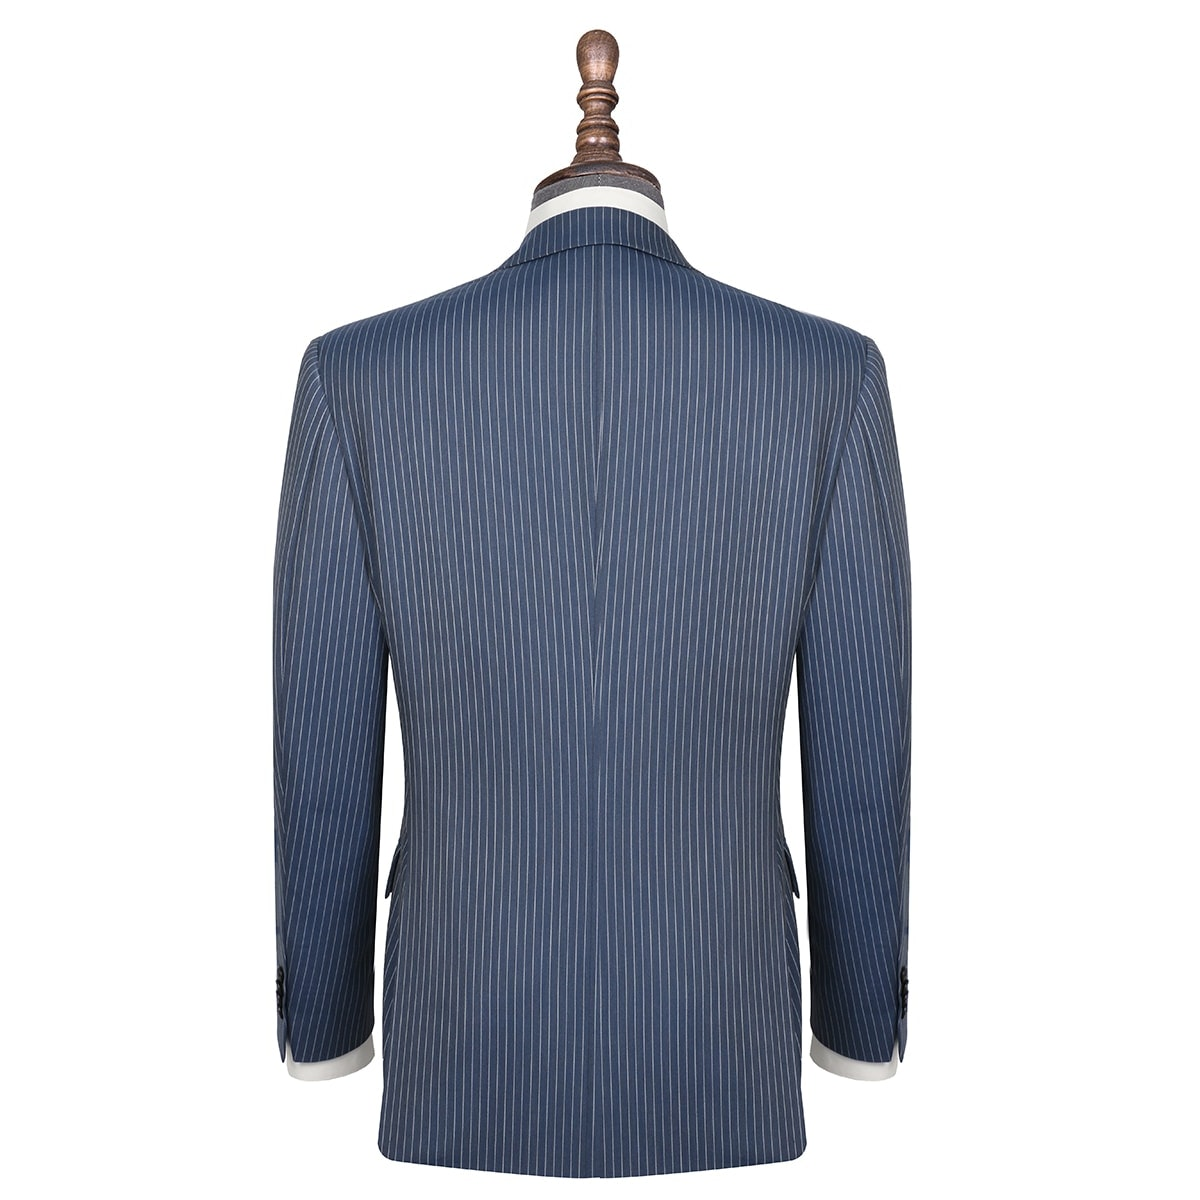 InStitchu Collection The Queens Navy Wool Pinstripe Jacket